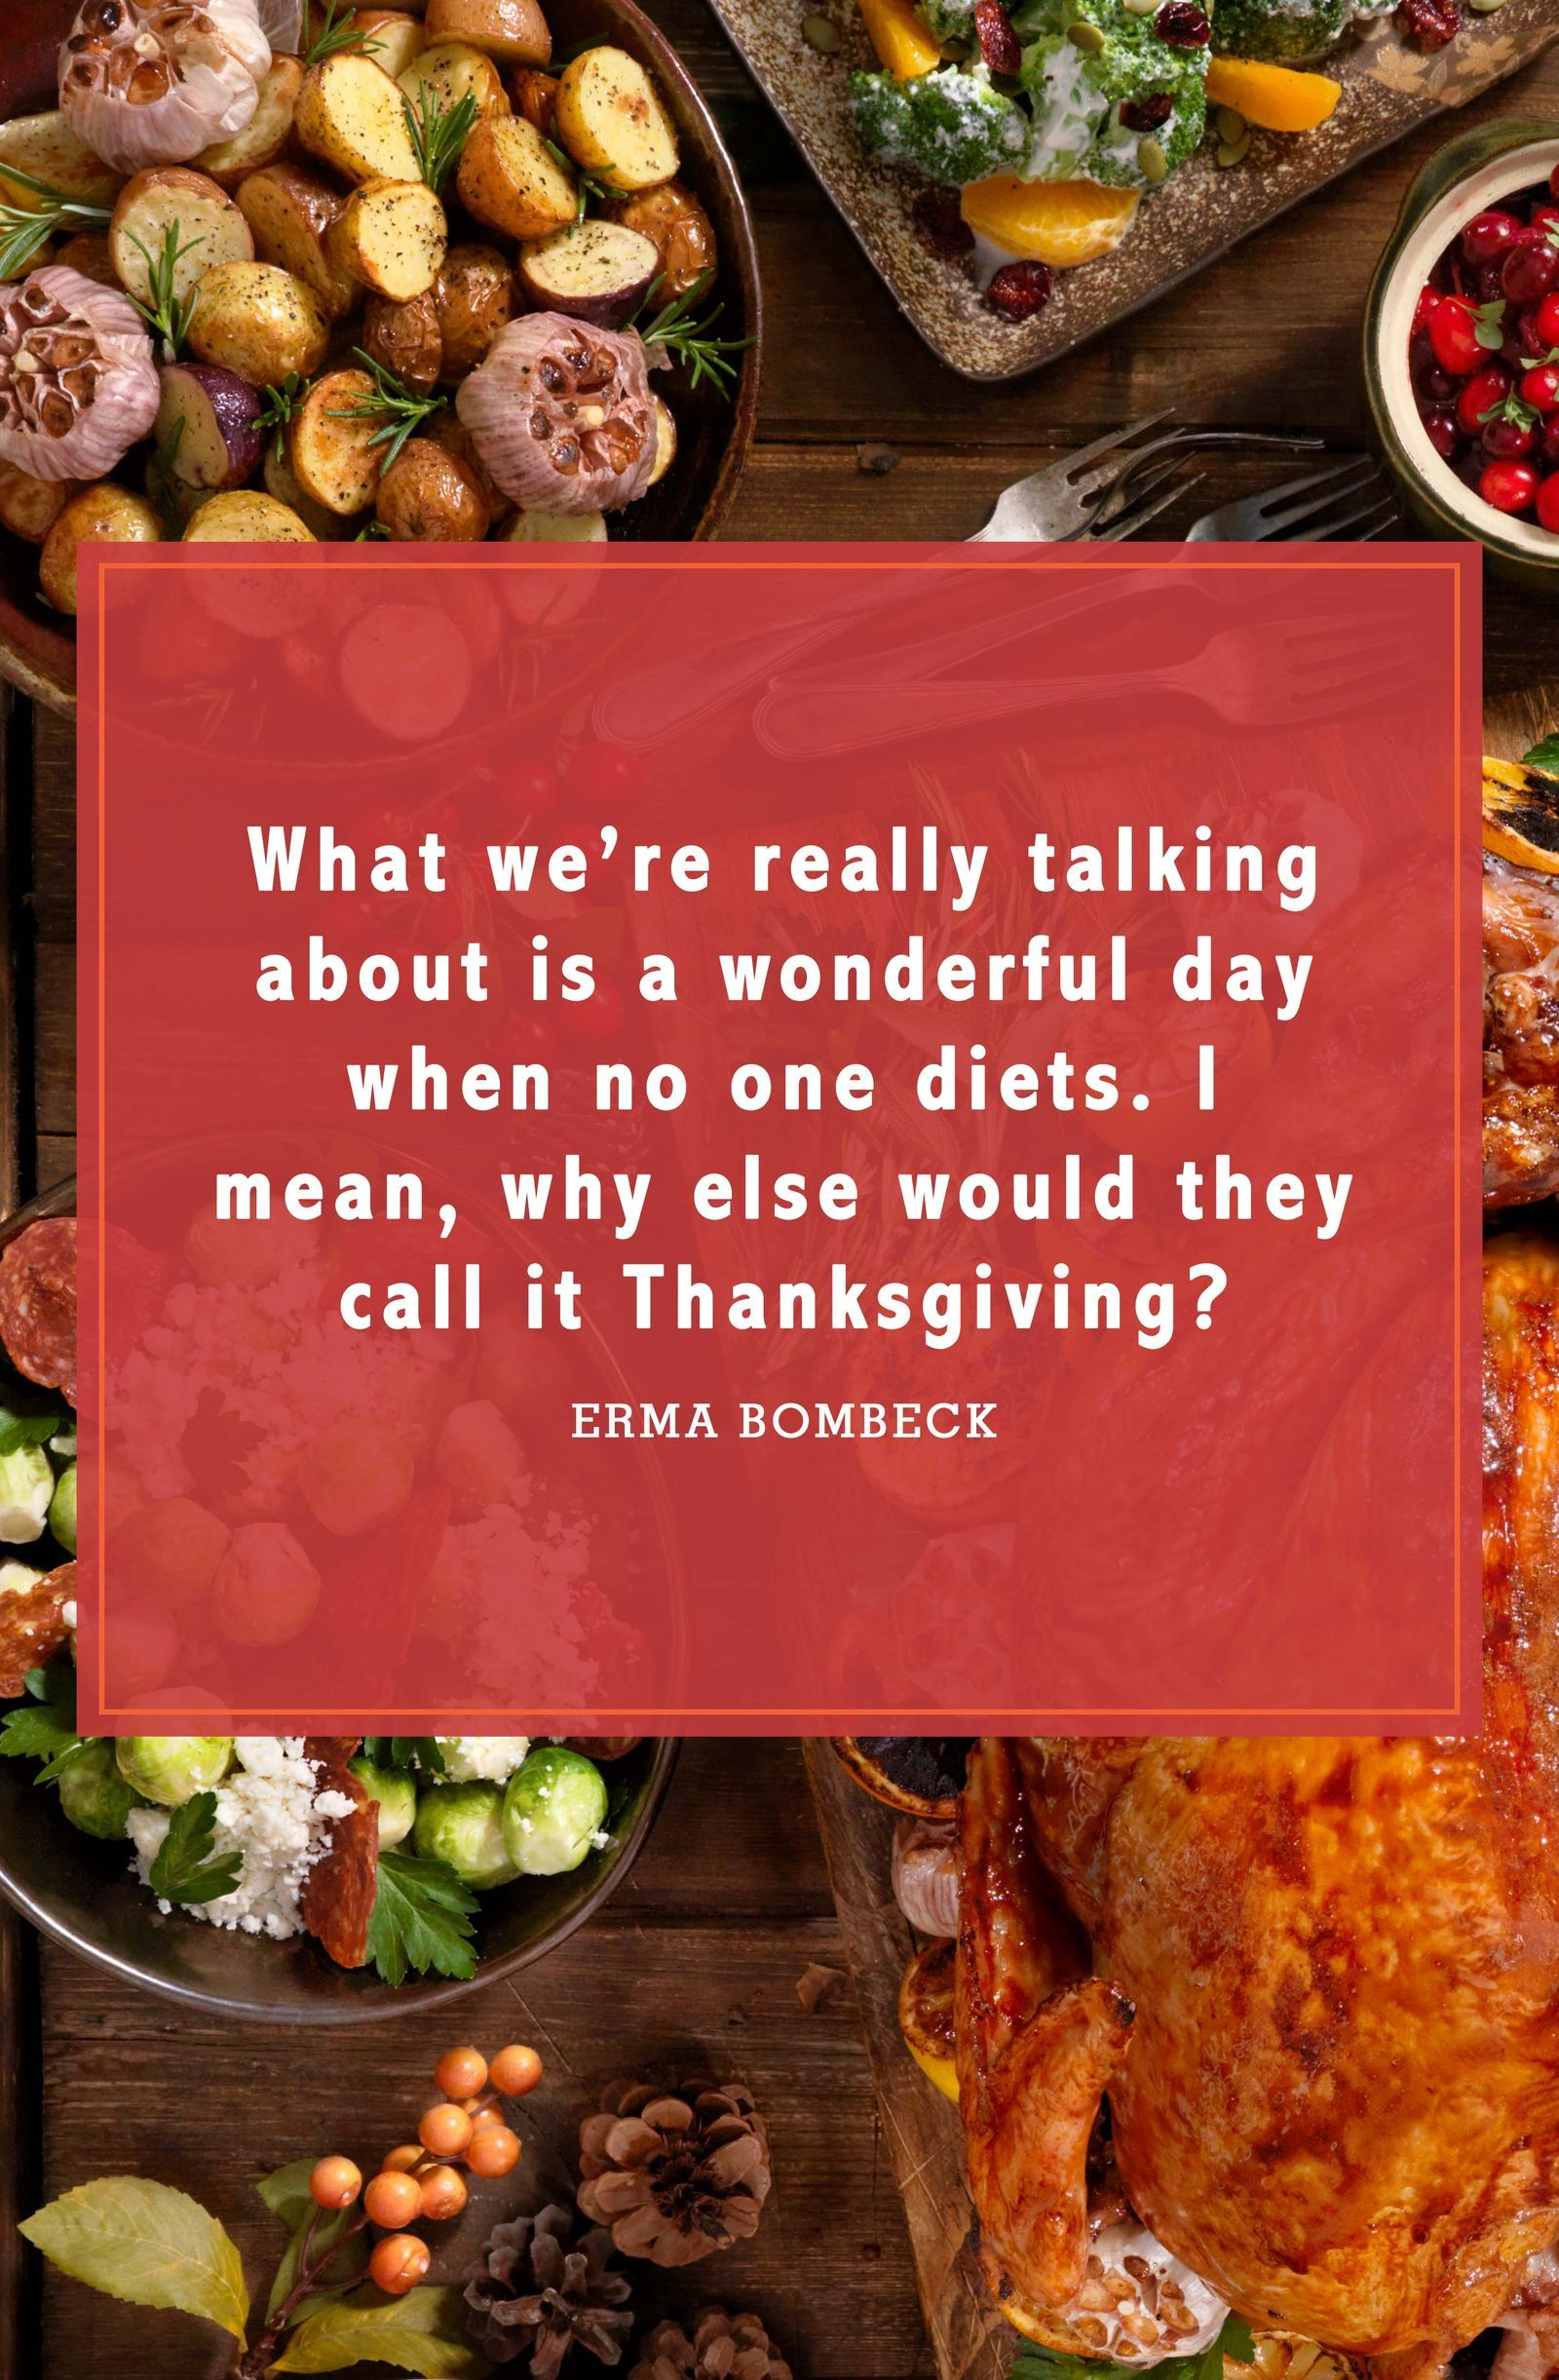 Funny Thanksgiving Quotes To Get All Your Guests Laughing Healthy Work Snacks Healthy Dinner Recipes Thanksgiving Quotes Funny